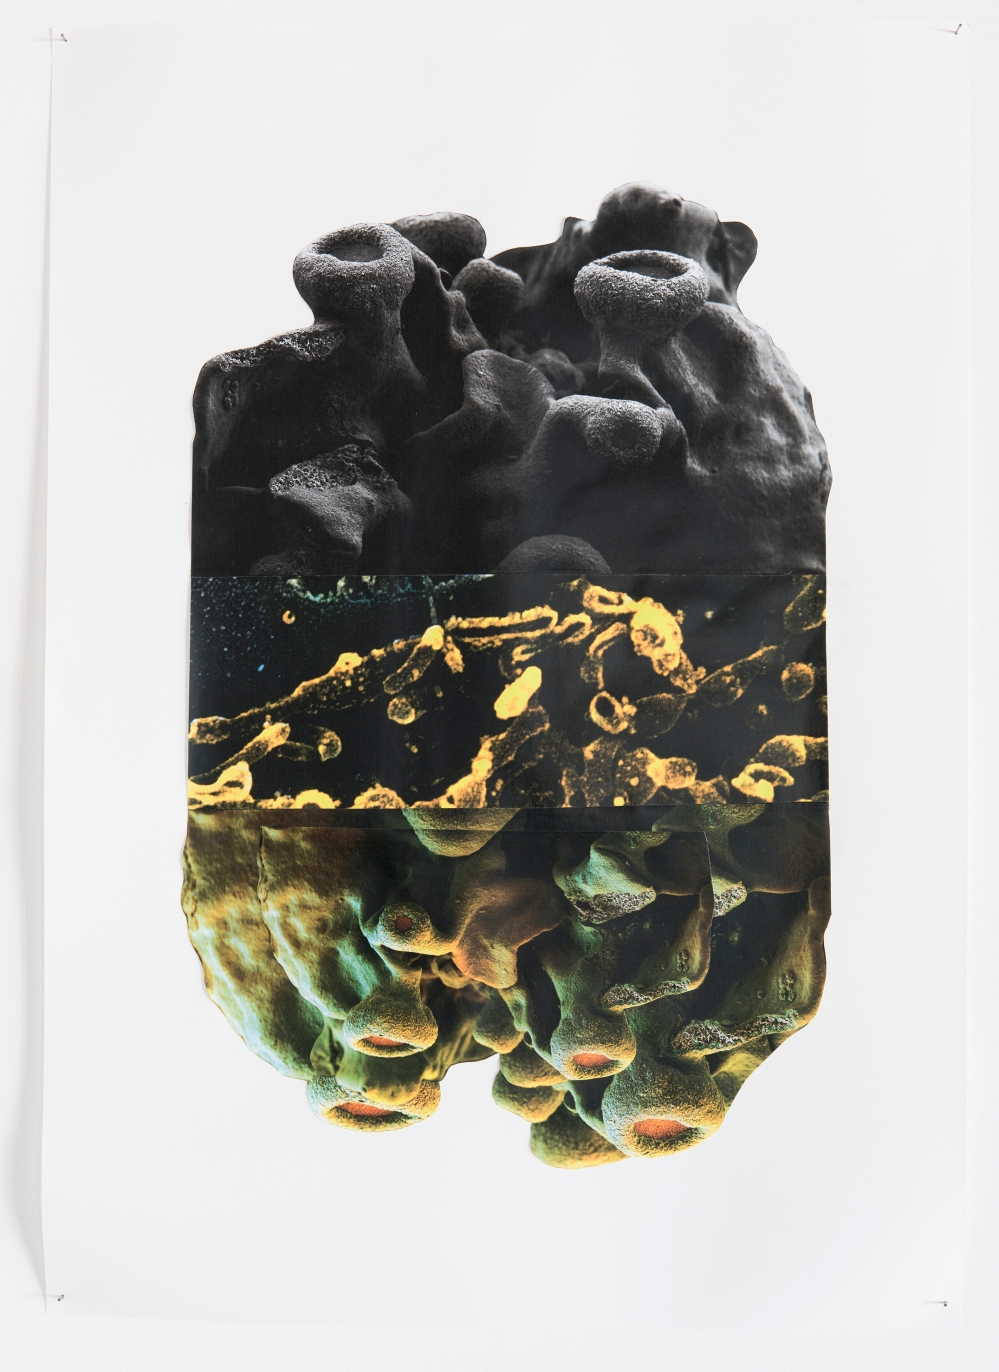 Dierdre Pearce, parataxis 1, 2017. From a series of collages of found digital and printed images and the artist's photographs. Photograph Brenton McGeachie